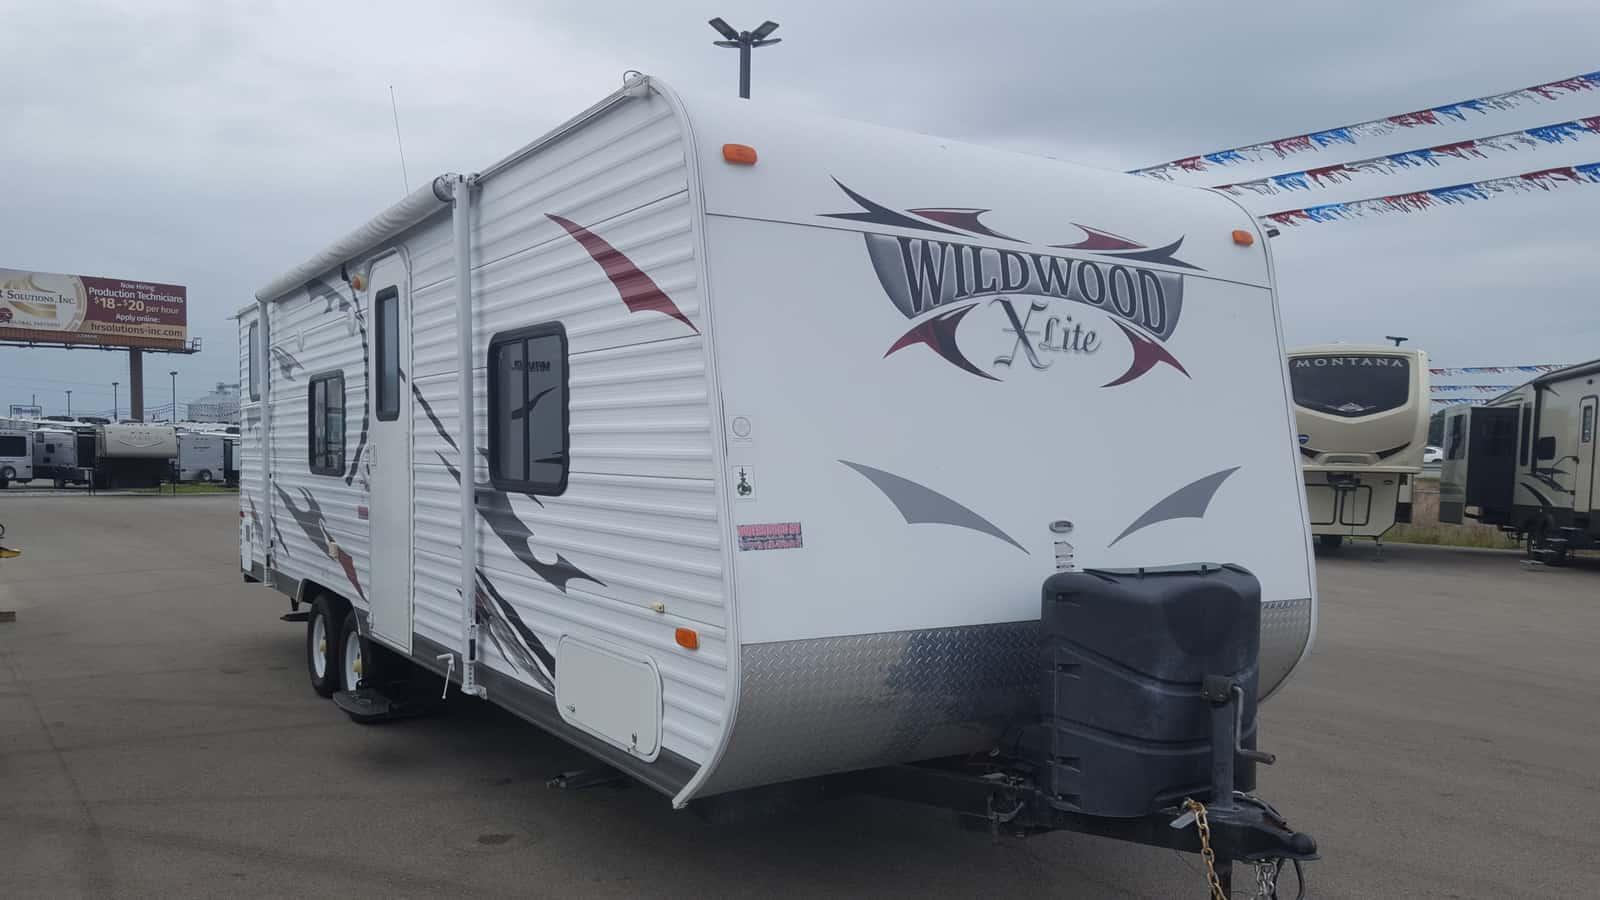 USED 2013 Forest River WILDWOOD X-LITE 261BHXL - American RV